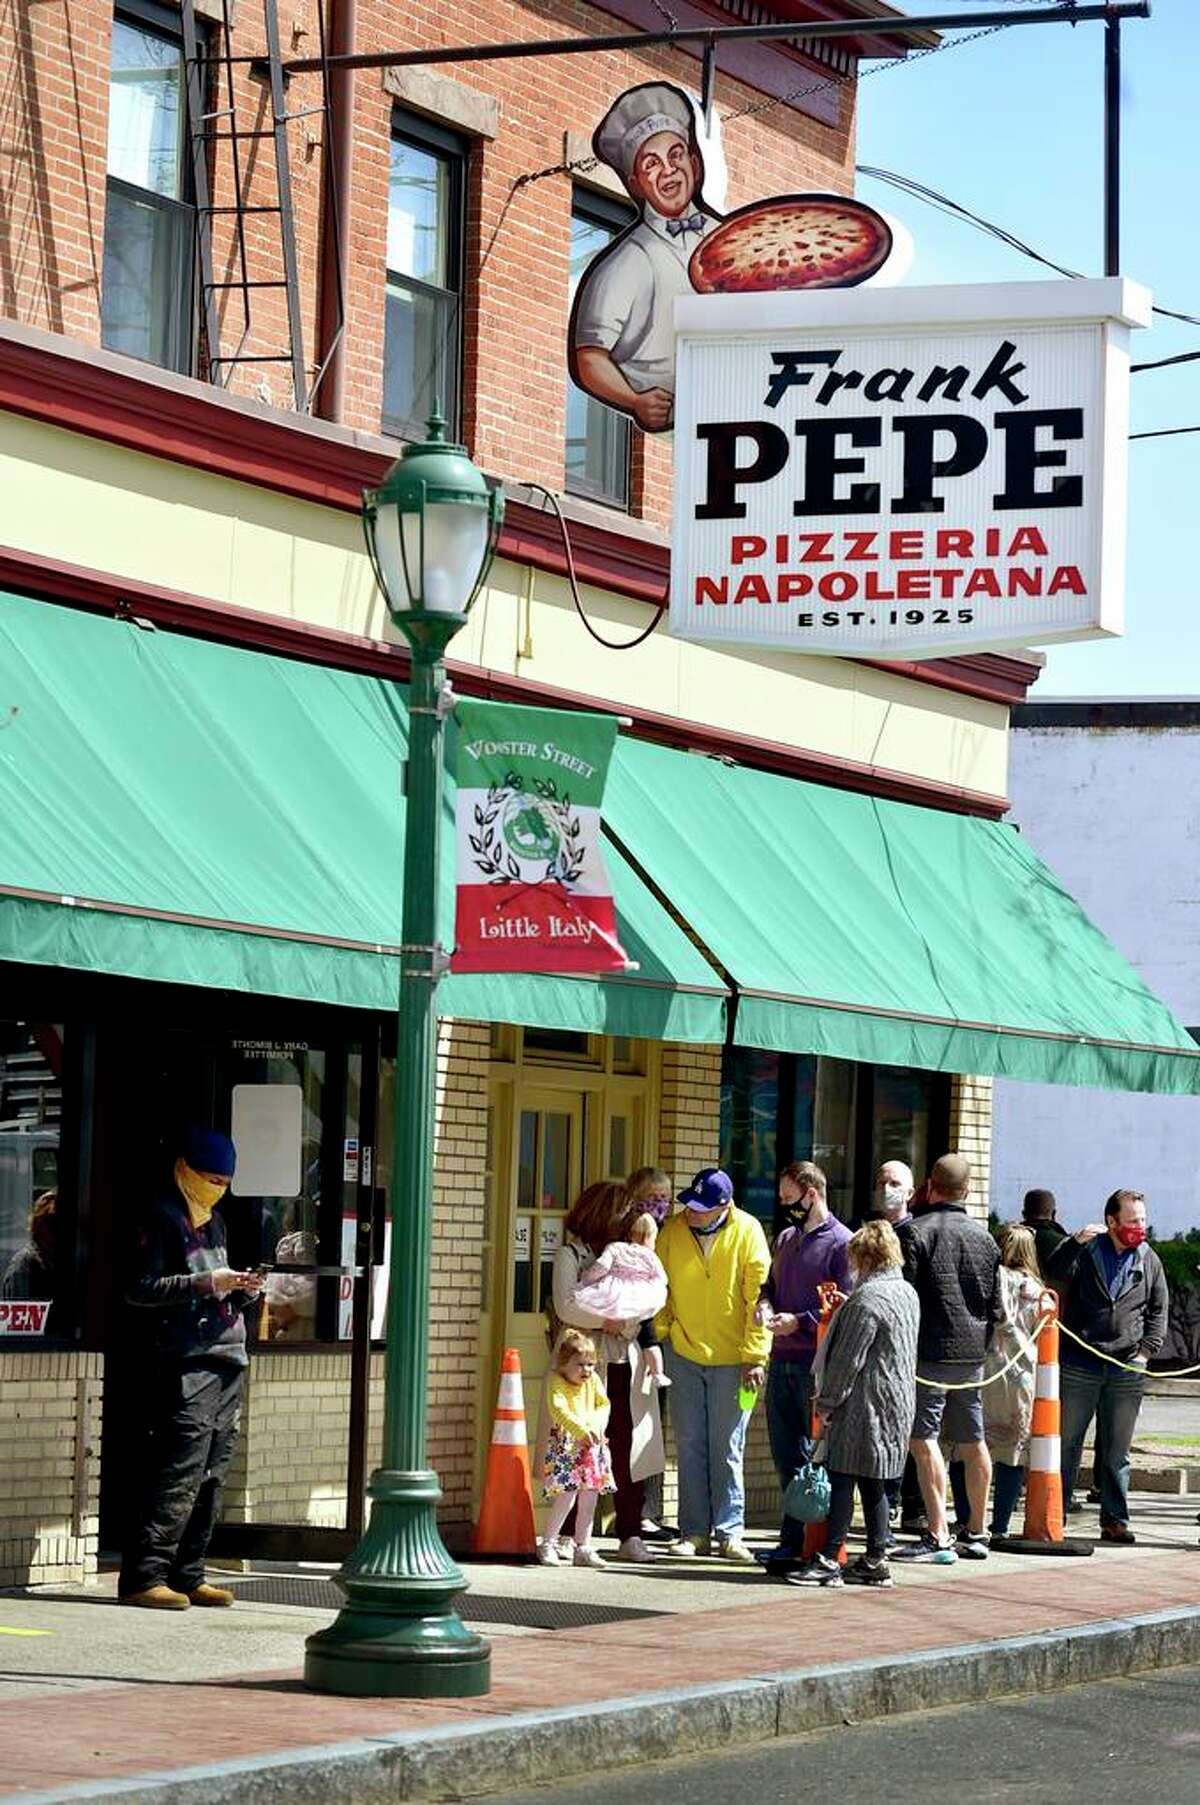 New Haven Frank Pepe Pizzeria Napoletana on Wooster Street in New Haven.